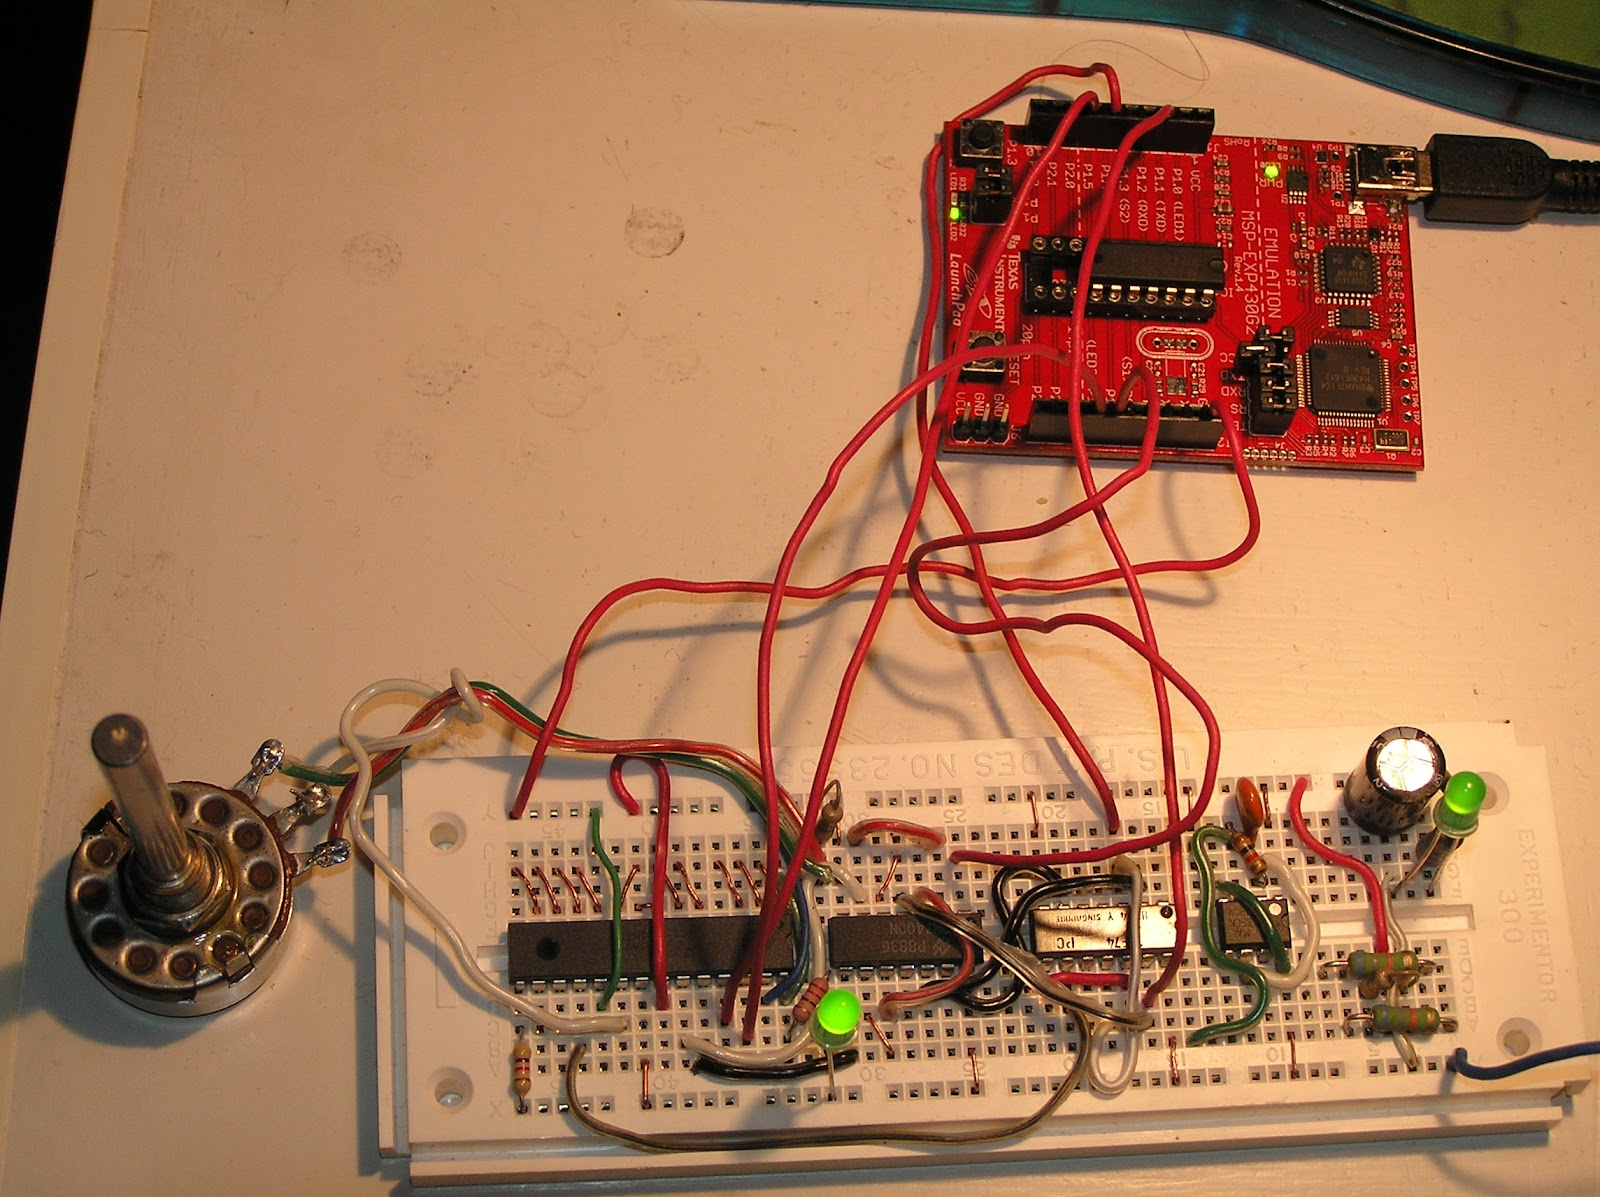 Dreamlayers My Msp430 Based Rgb Light Tlc5940 Circuit With Usb Hub Power First Design Used A 7474 Dual D Type Flip Flop In Toggle Configuration Generated Smclk 2 And I The Clr Input To Extend Gsclk Cycle